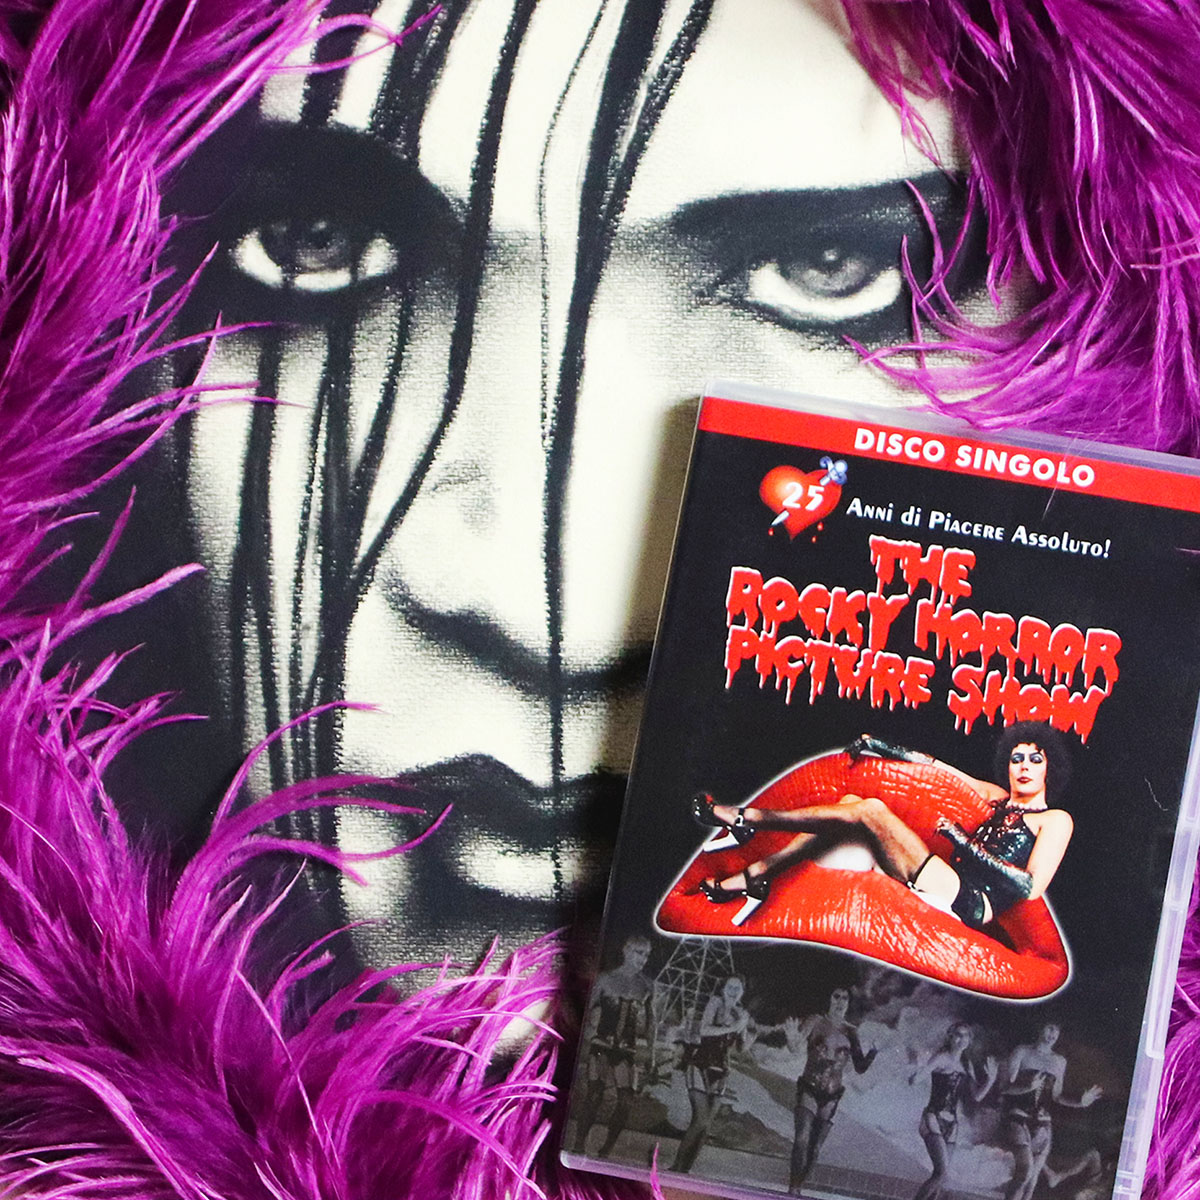 The rocky horror picture show dvd e ritratto a carboncino di Brian Molko